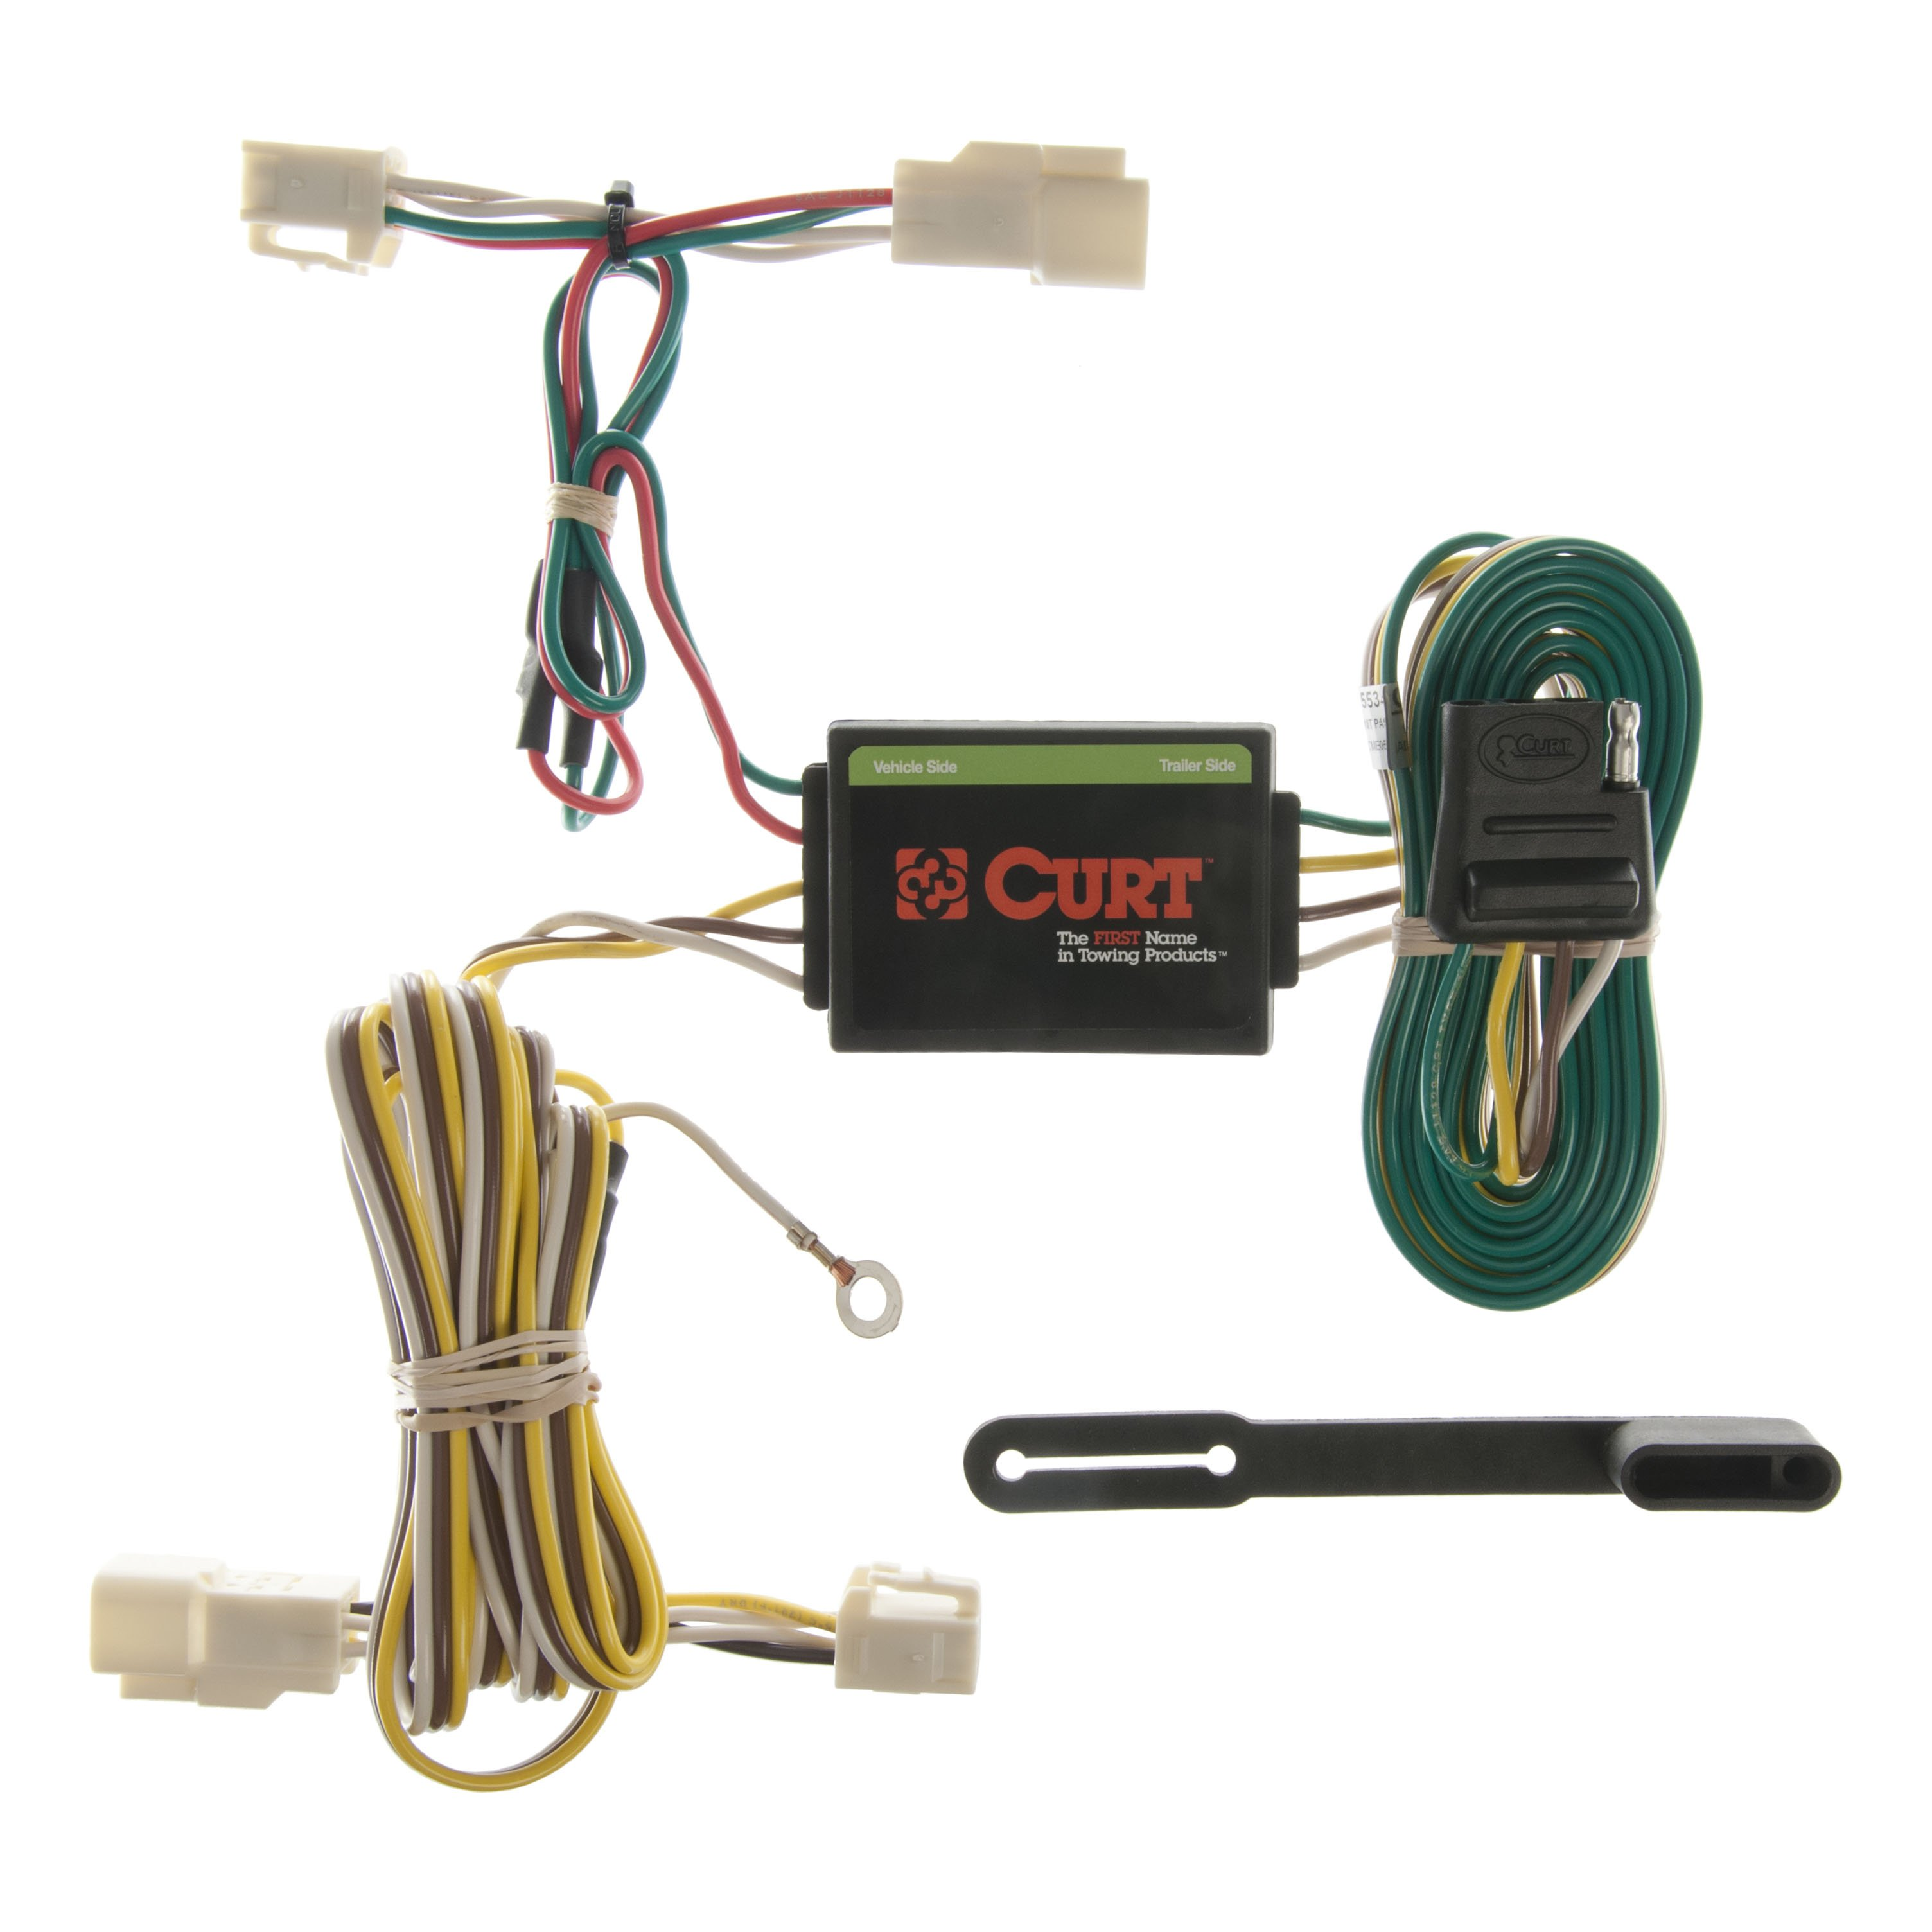 Curt Custom Vehicle To Trailer Wiring Harness 55341 For 1996 2002 Toyota 4runner